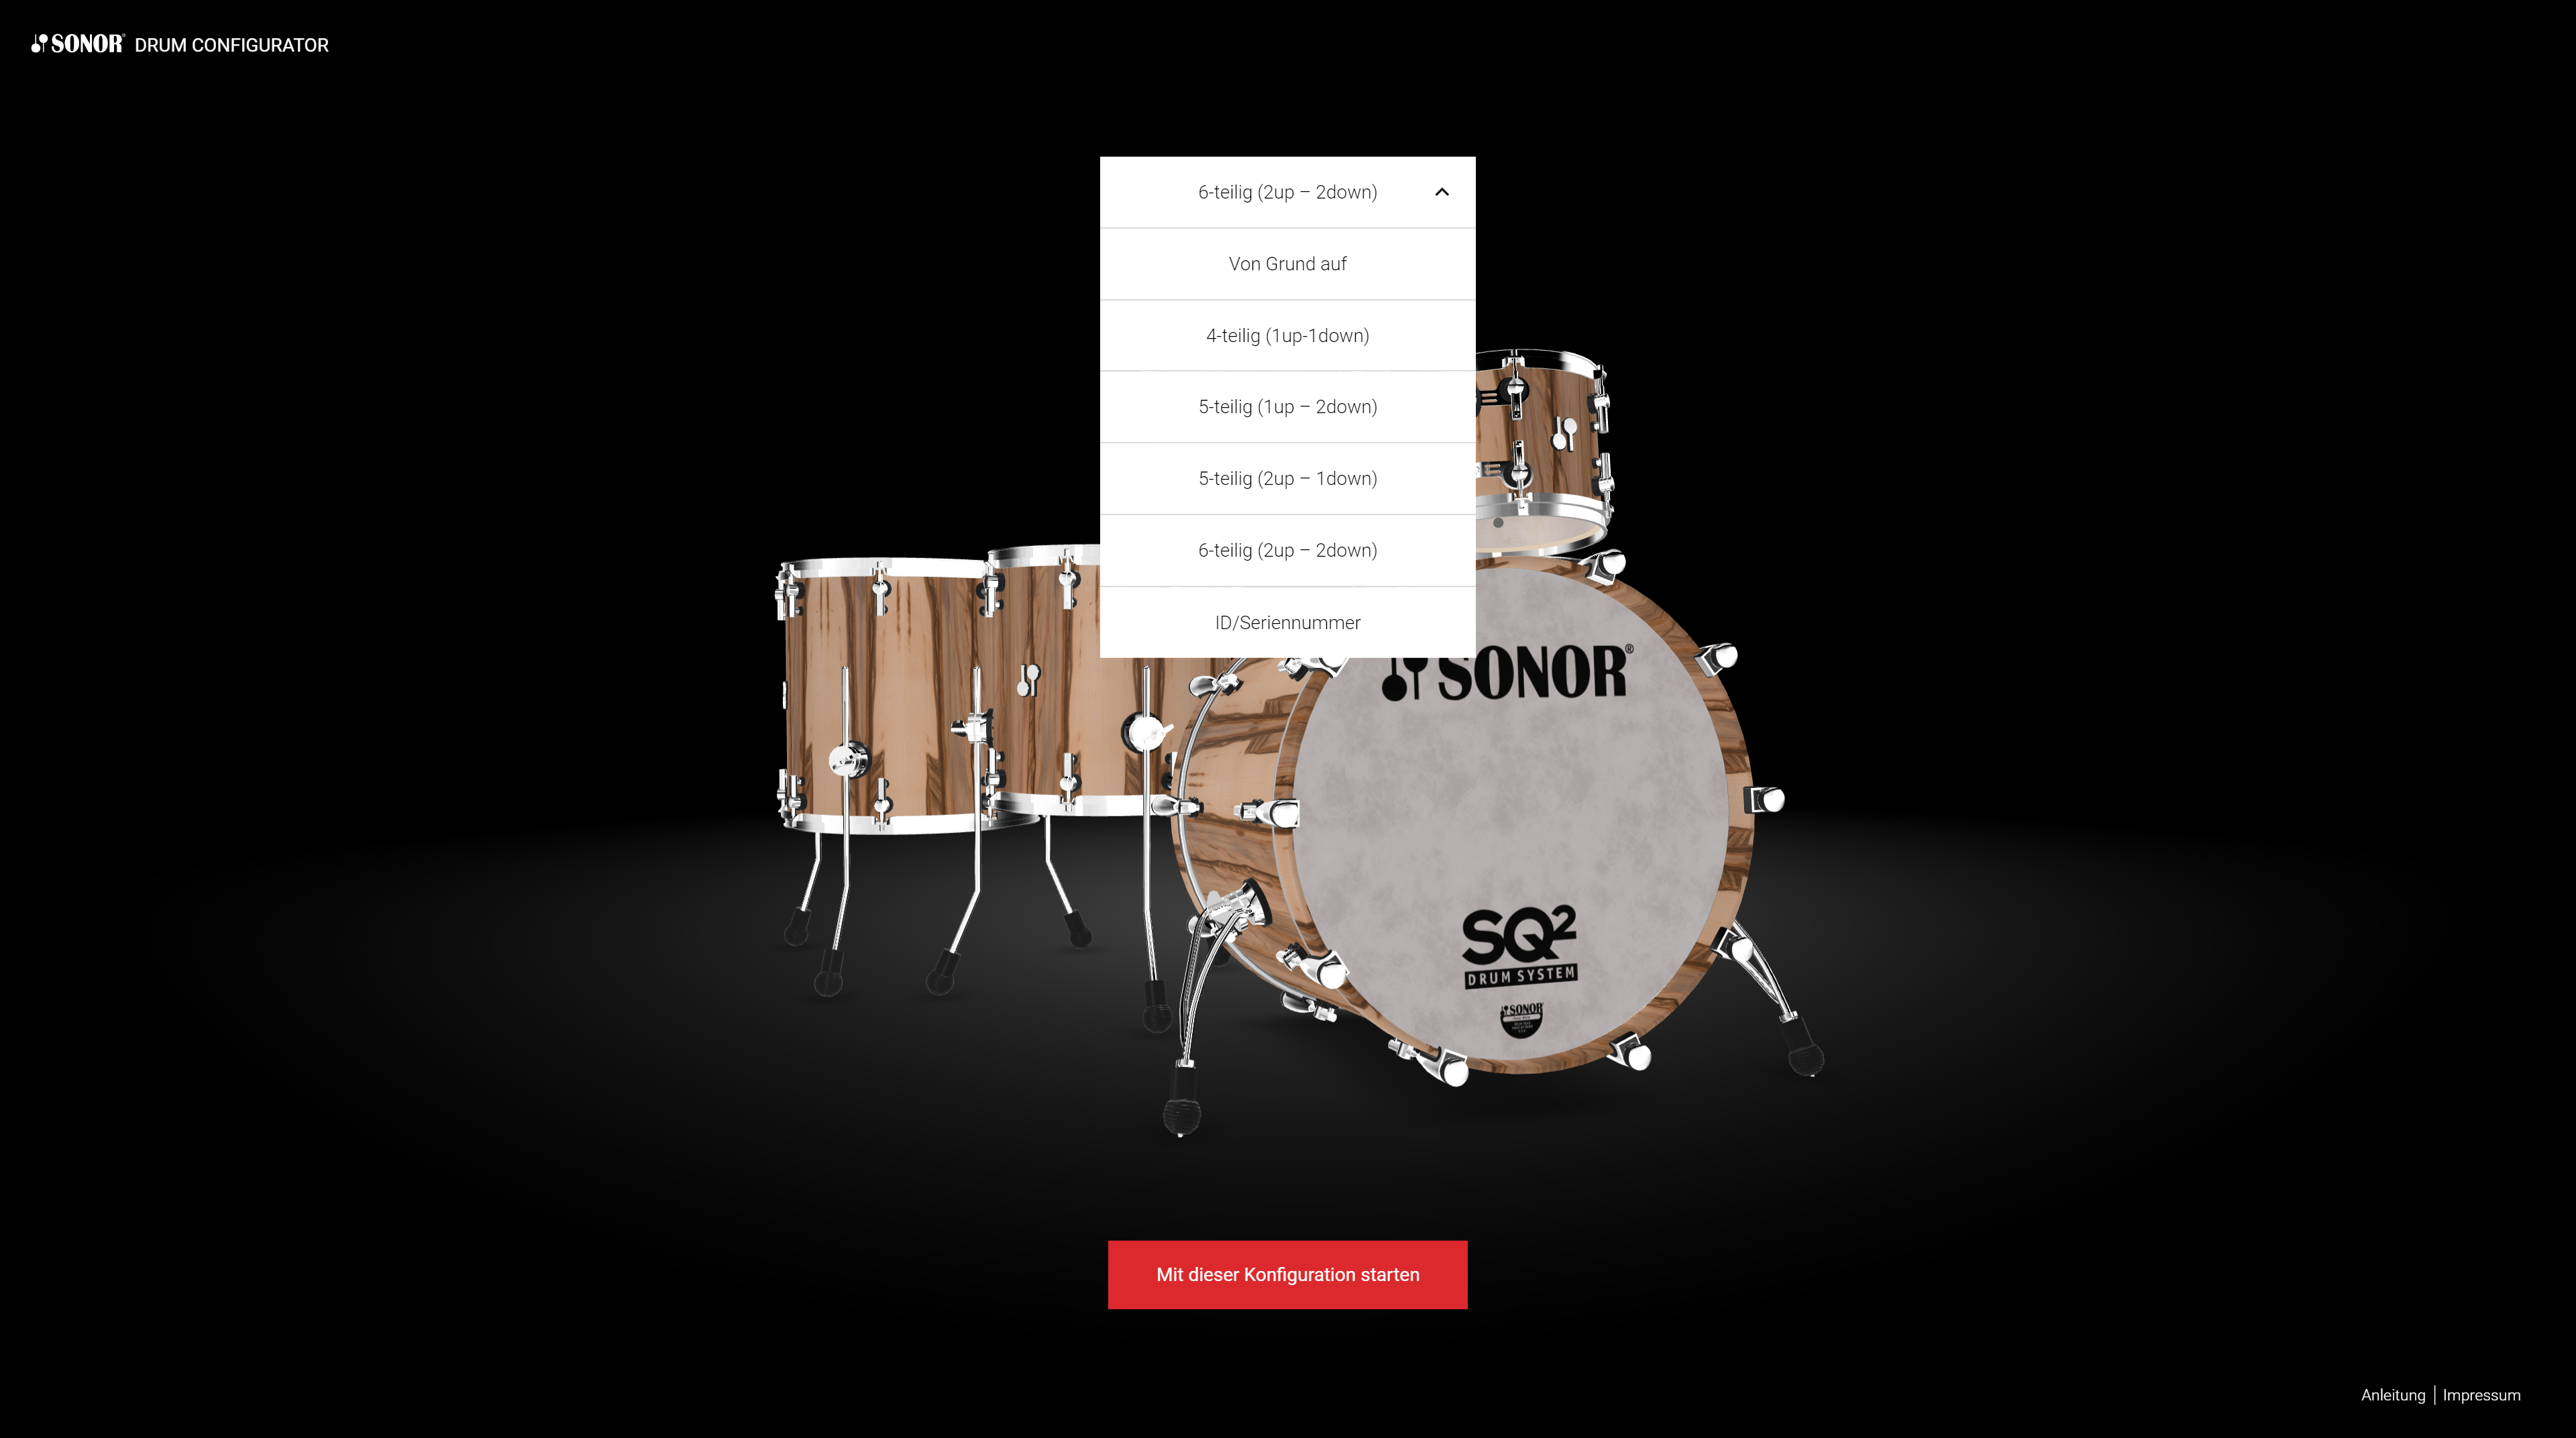 preset when start sonor sq2 configurator